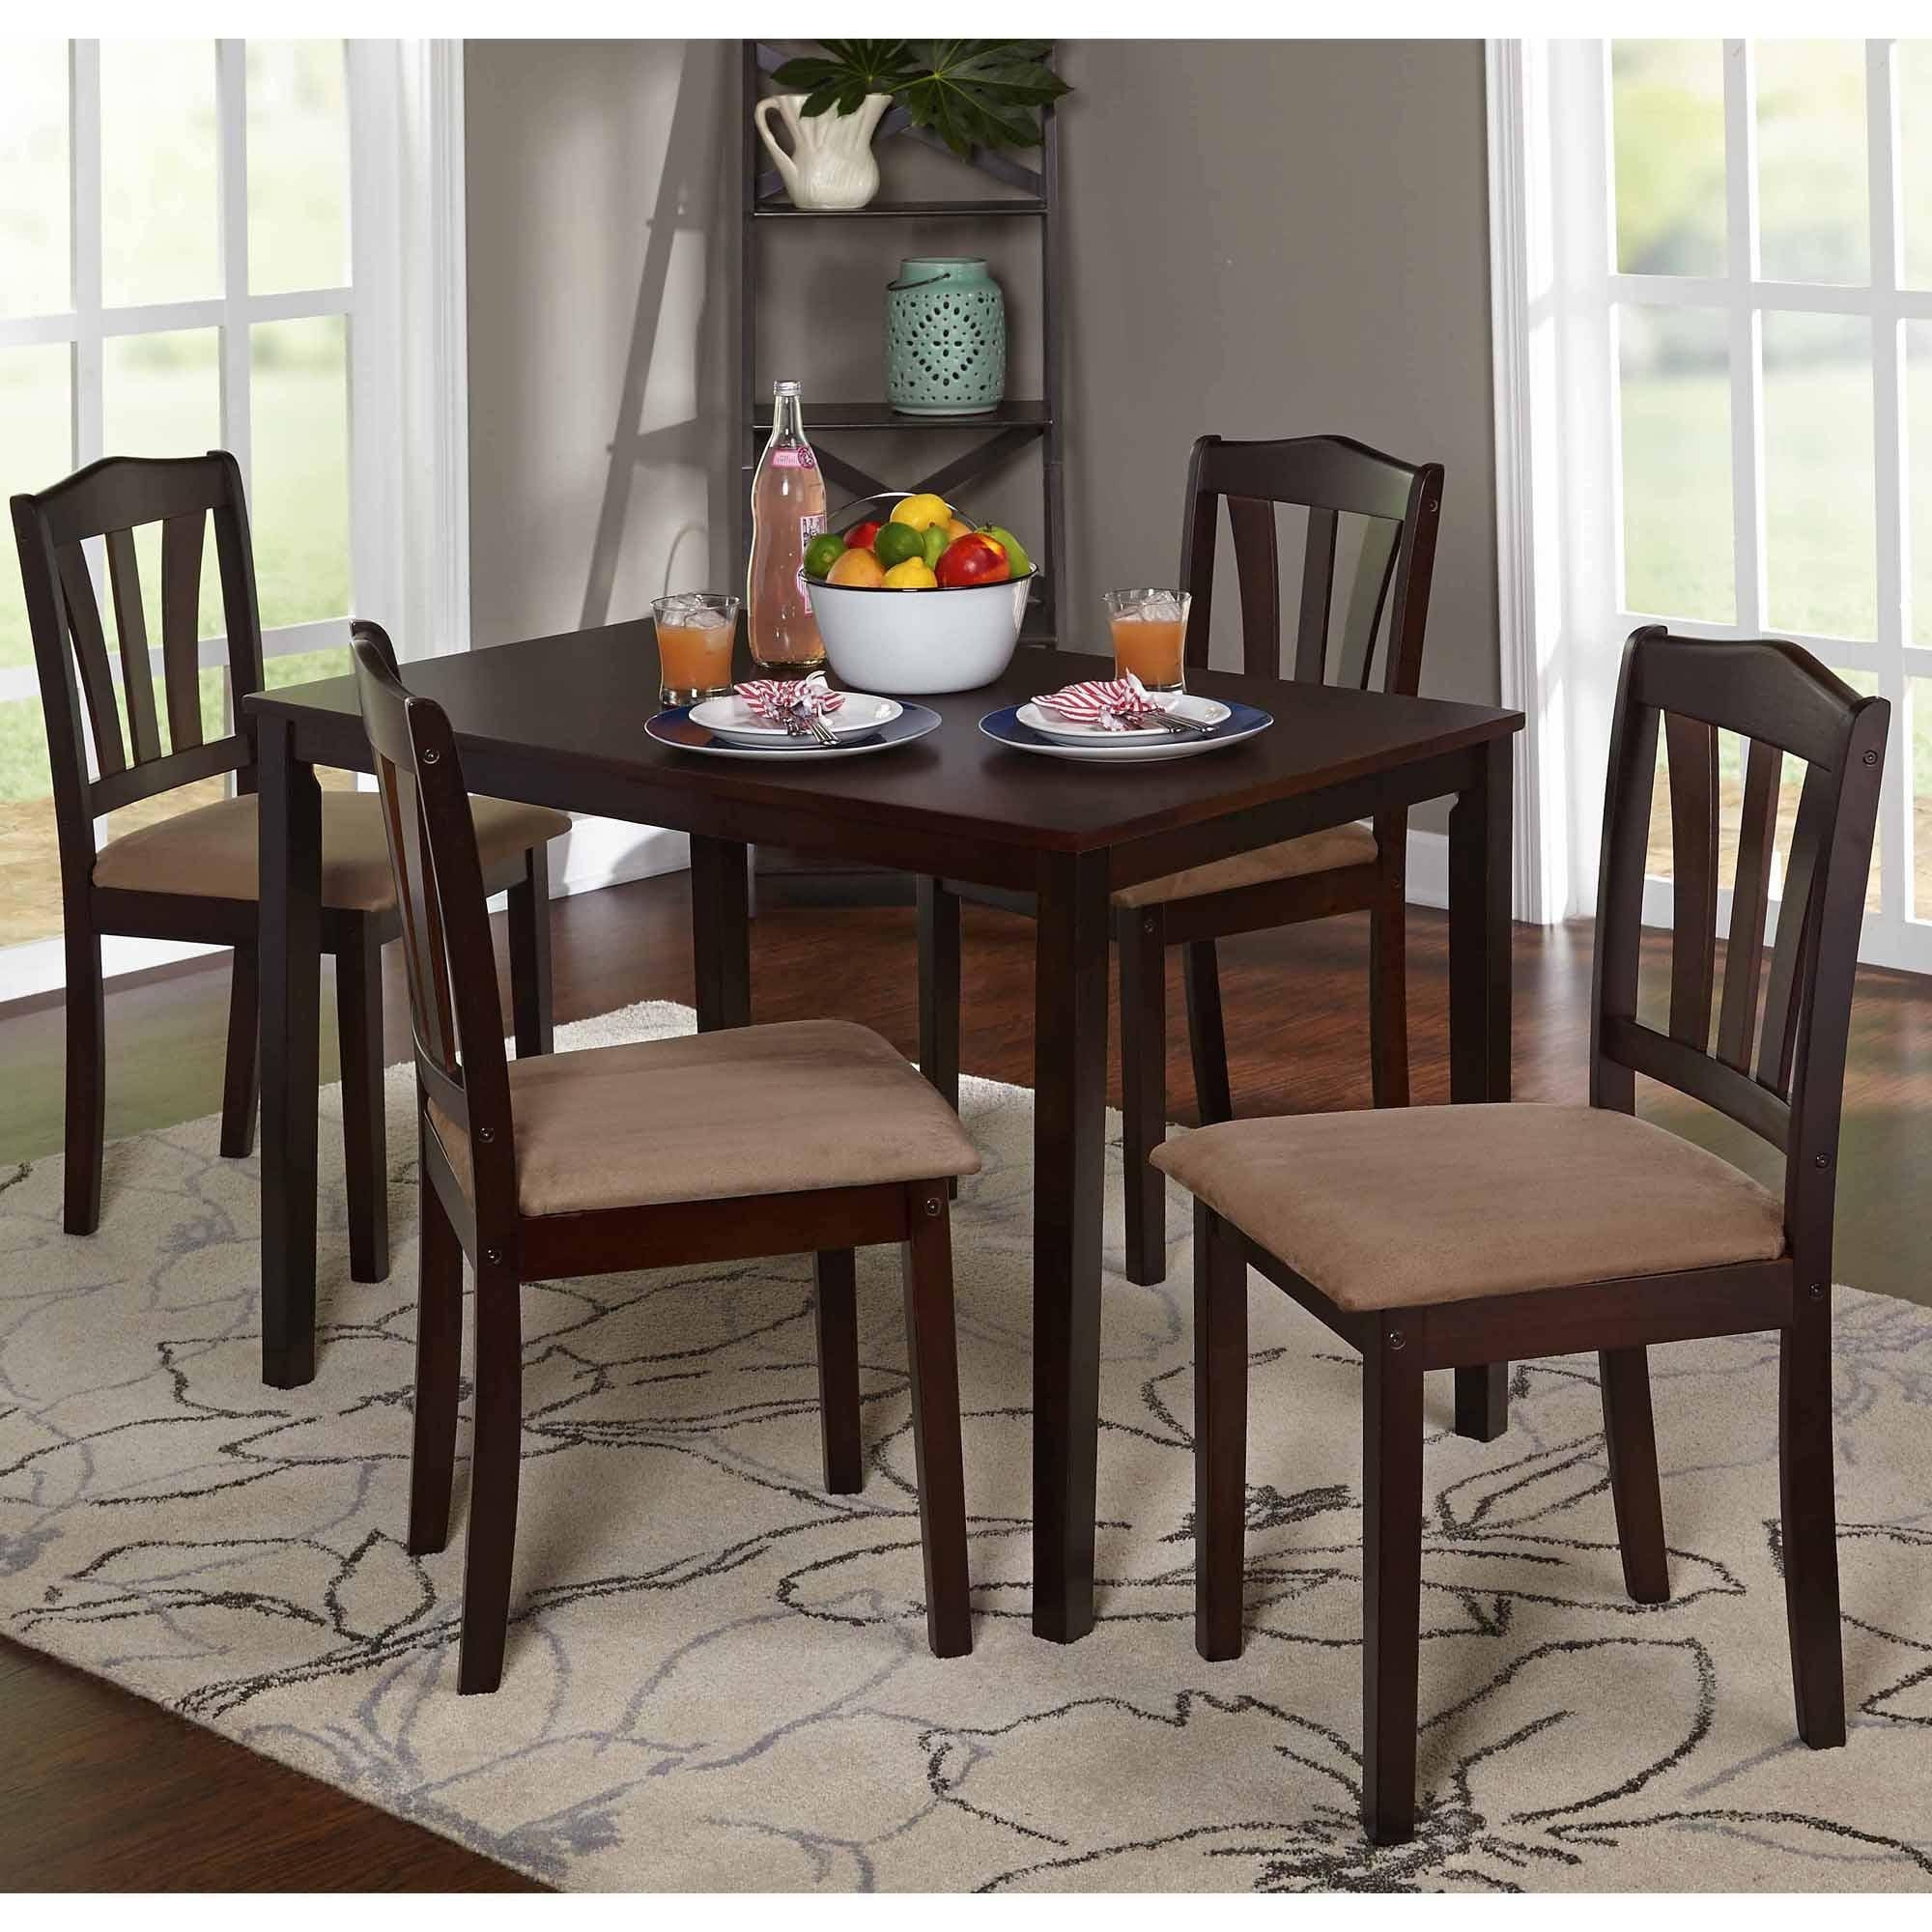 Most Recent Dining Sets With Metropolitan 5 Piece Dining Set, Multiple Colors – Walmart (View 3 of 25)